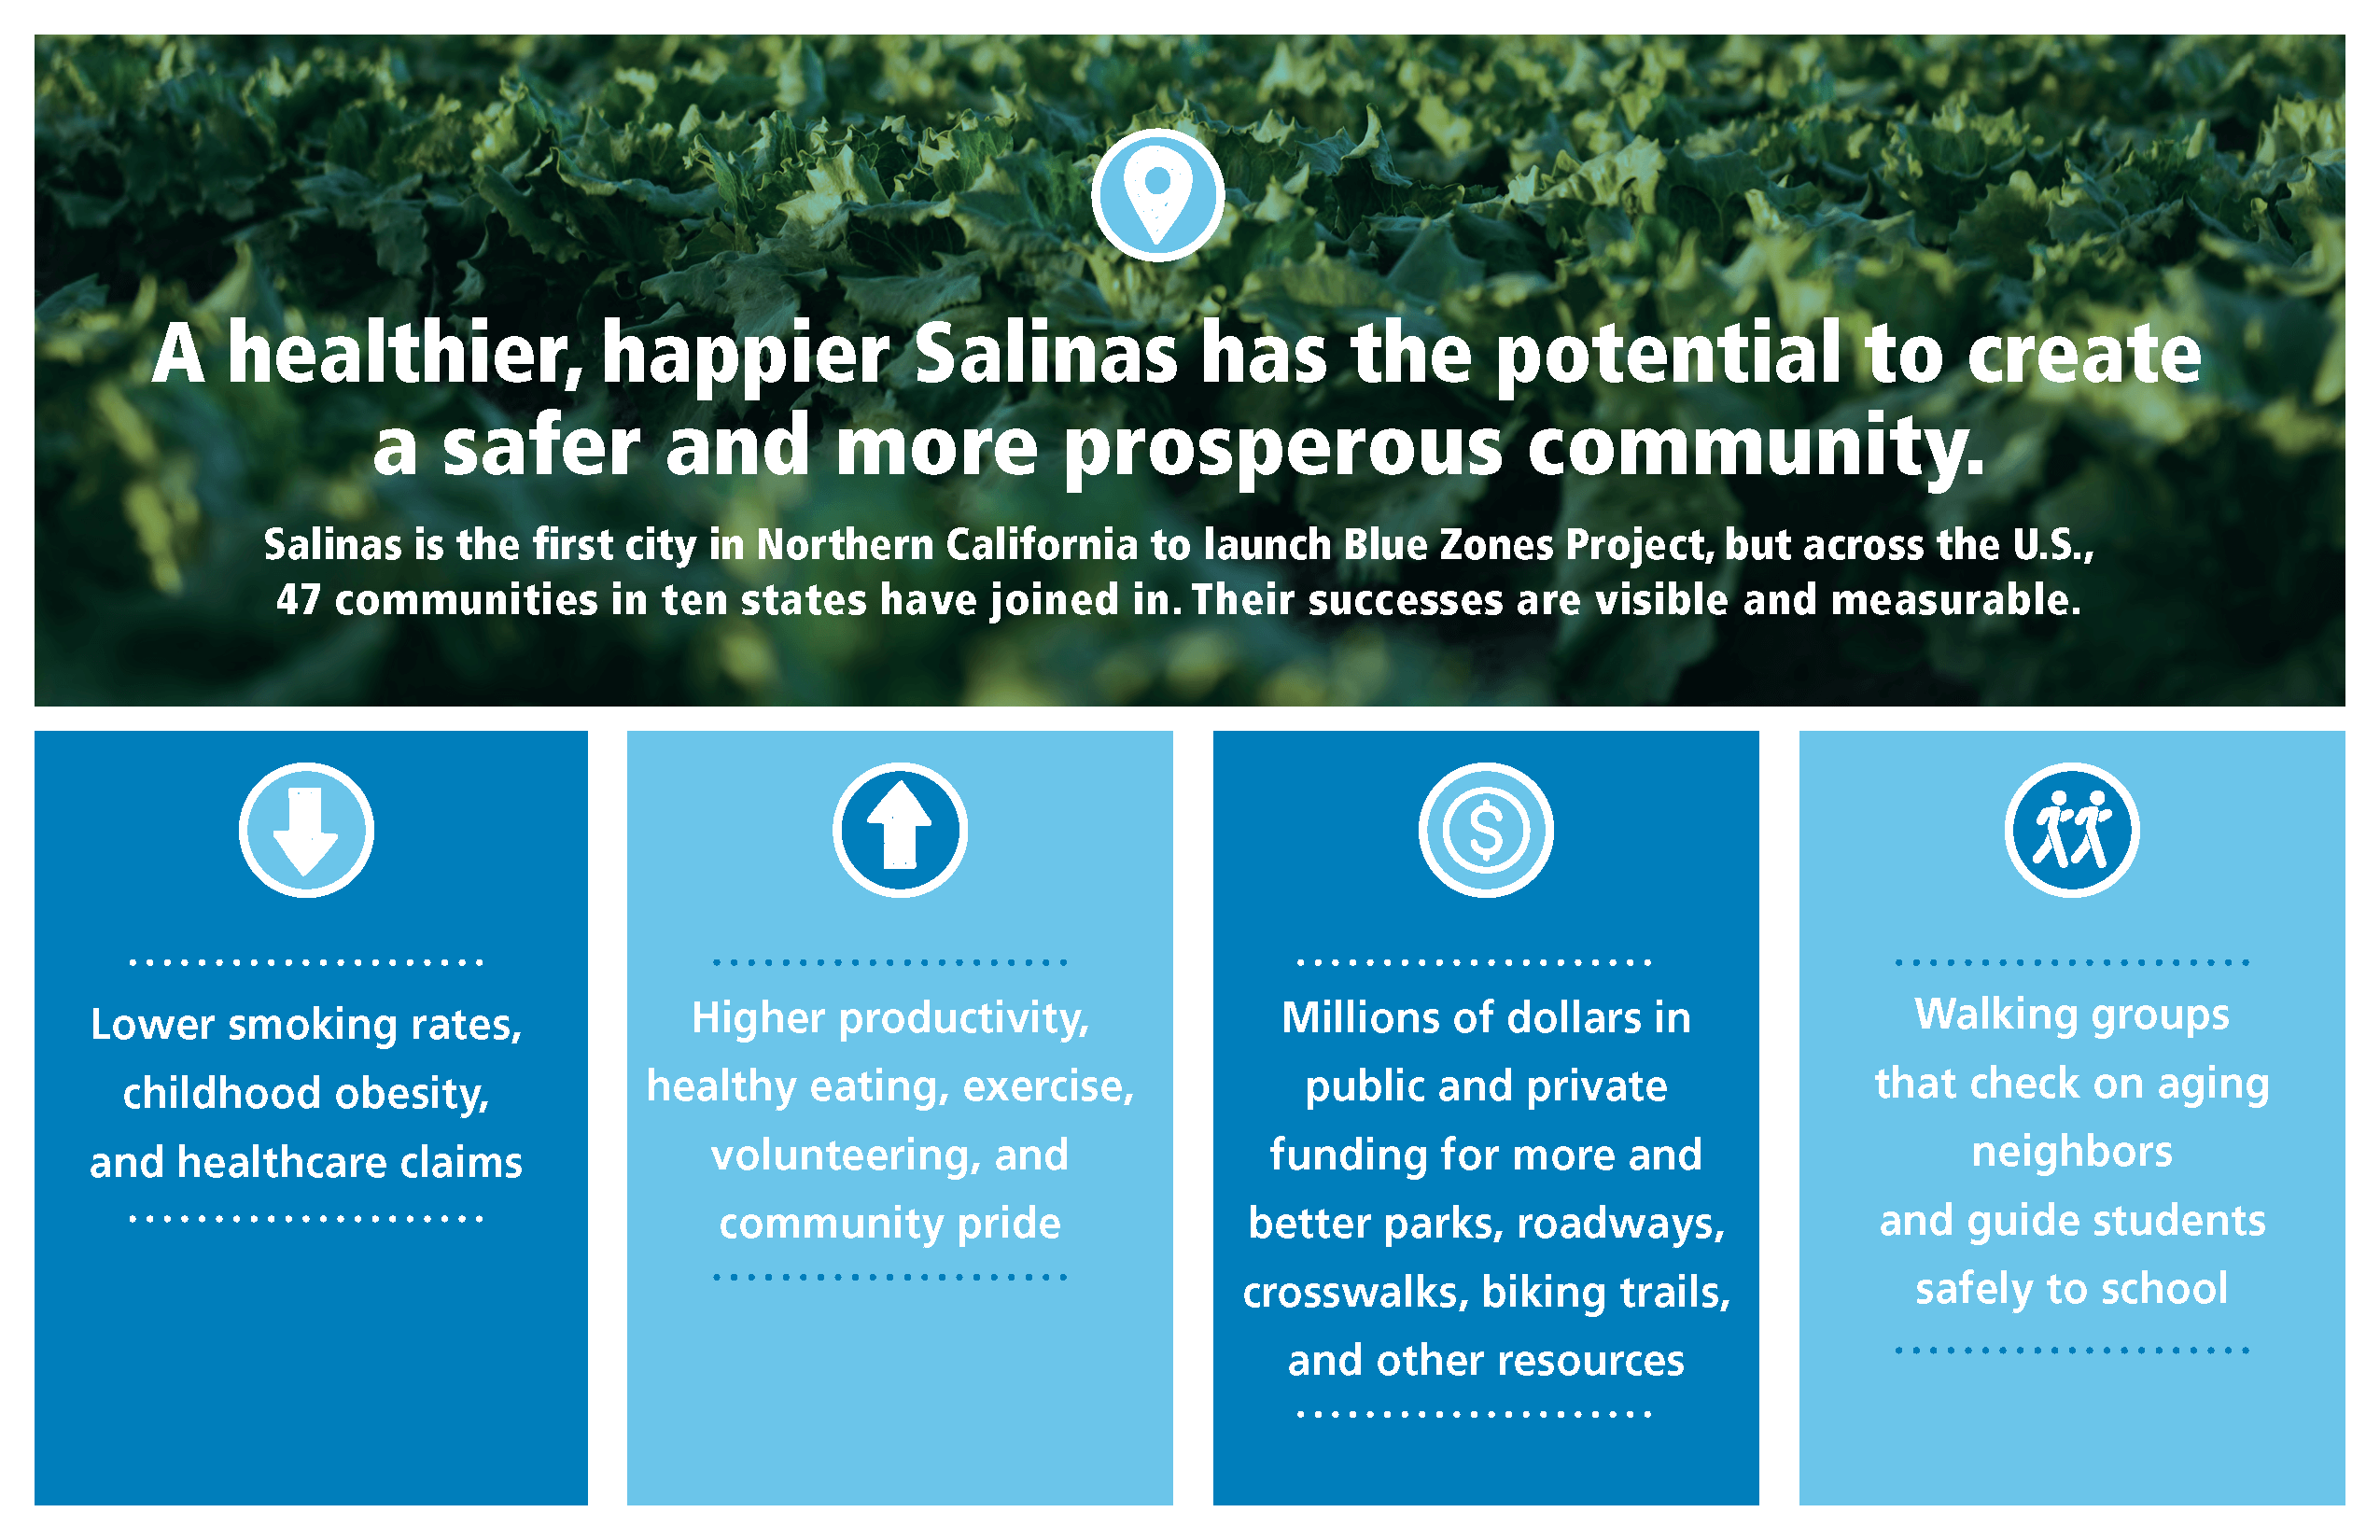 Salinas is the first city in Northern California to launch Blue Zones Project, but across the US, 47 communities in 10 states have joined in.